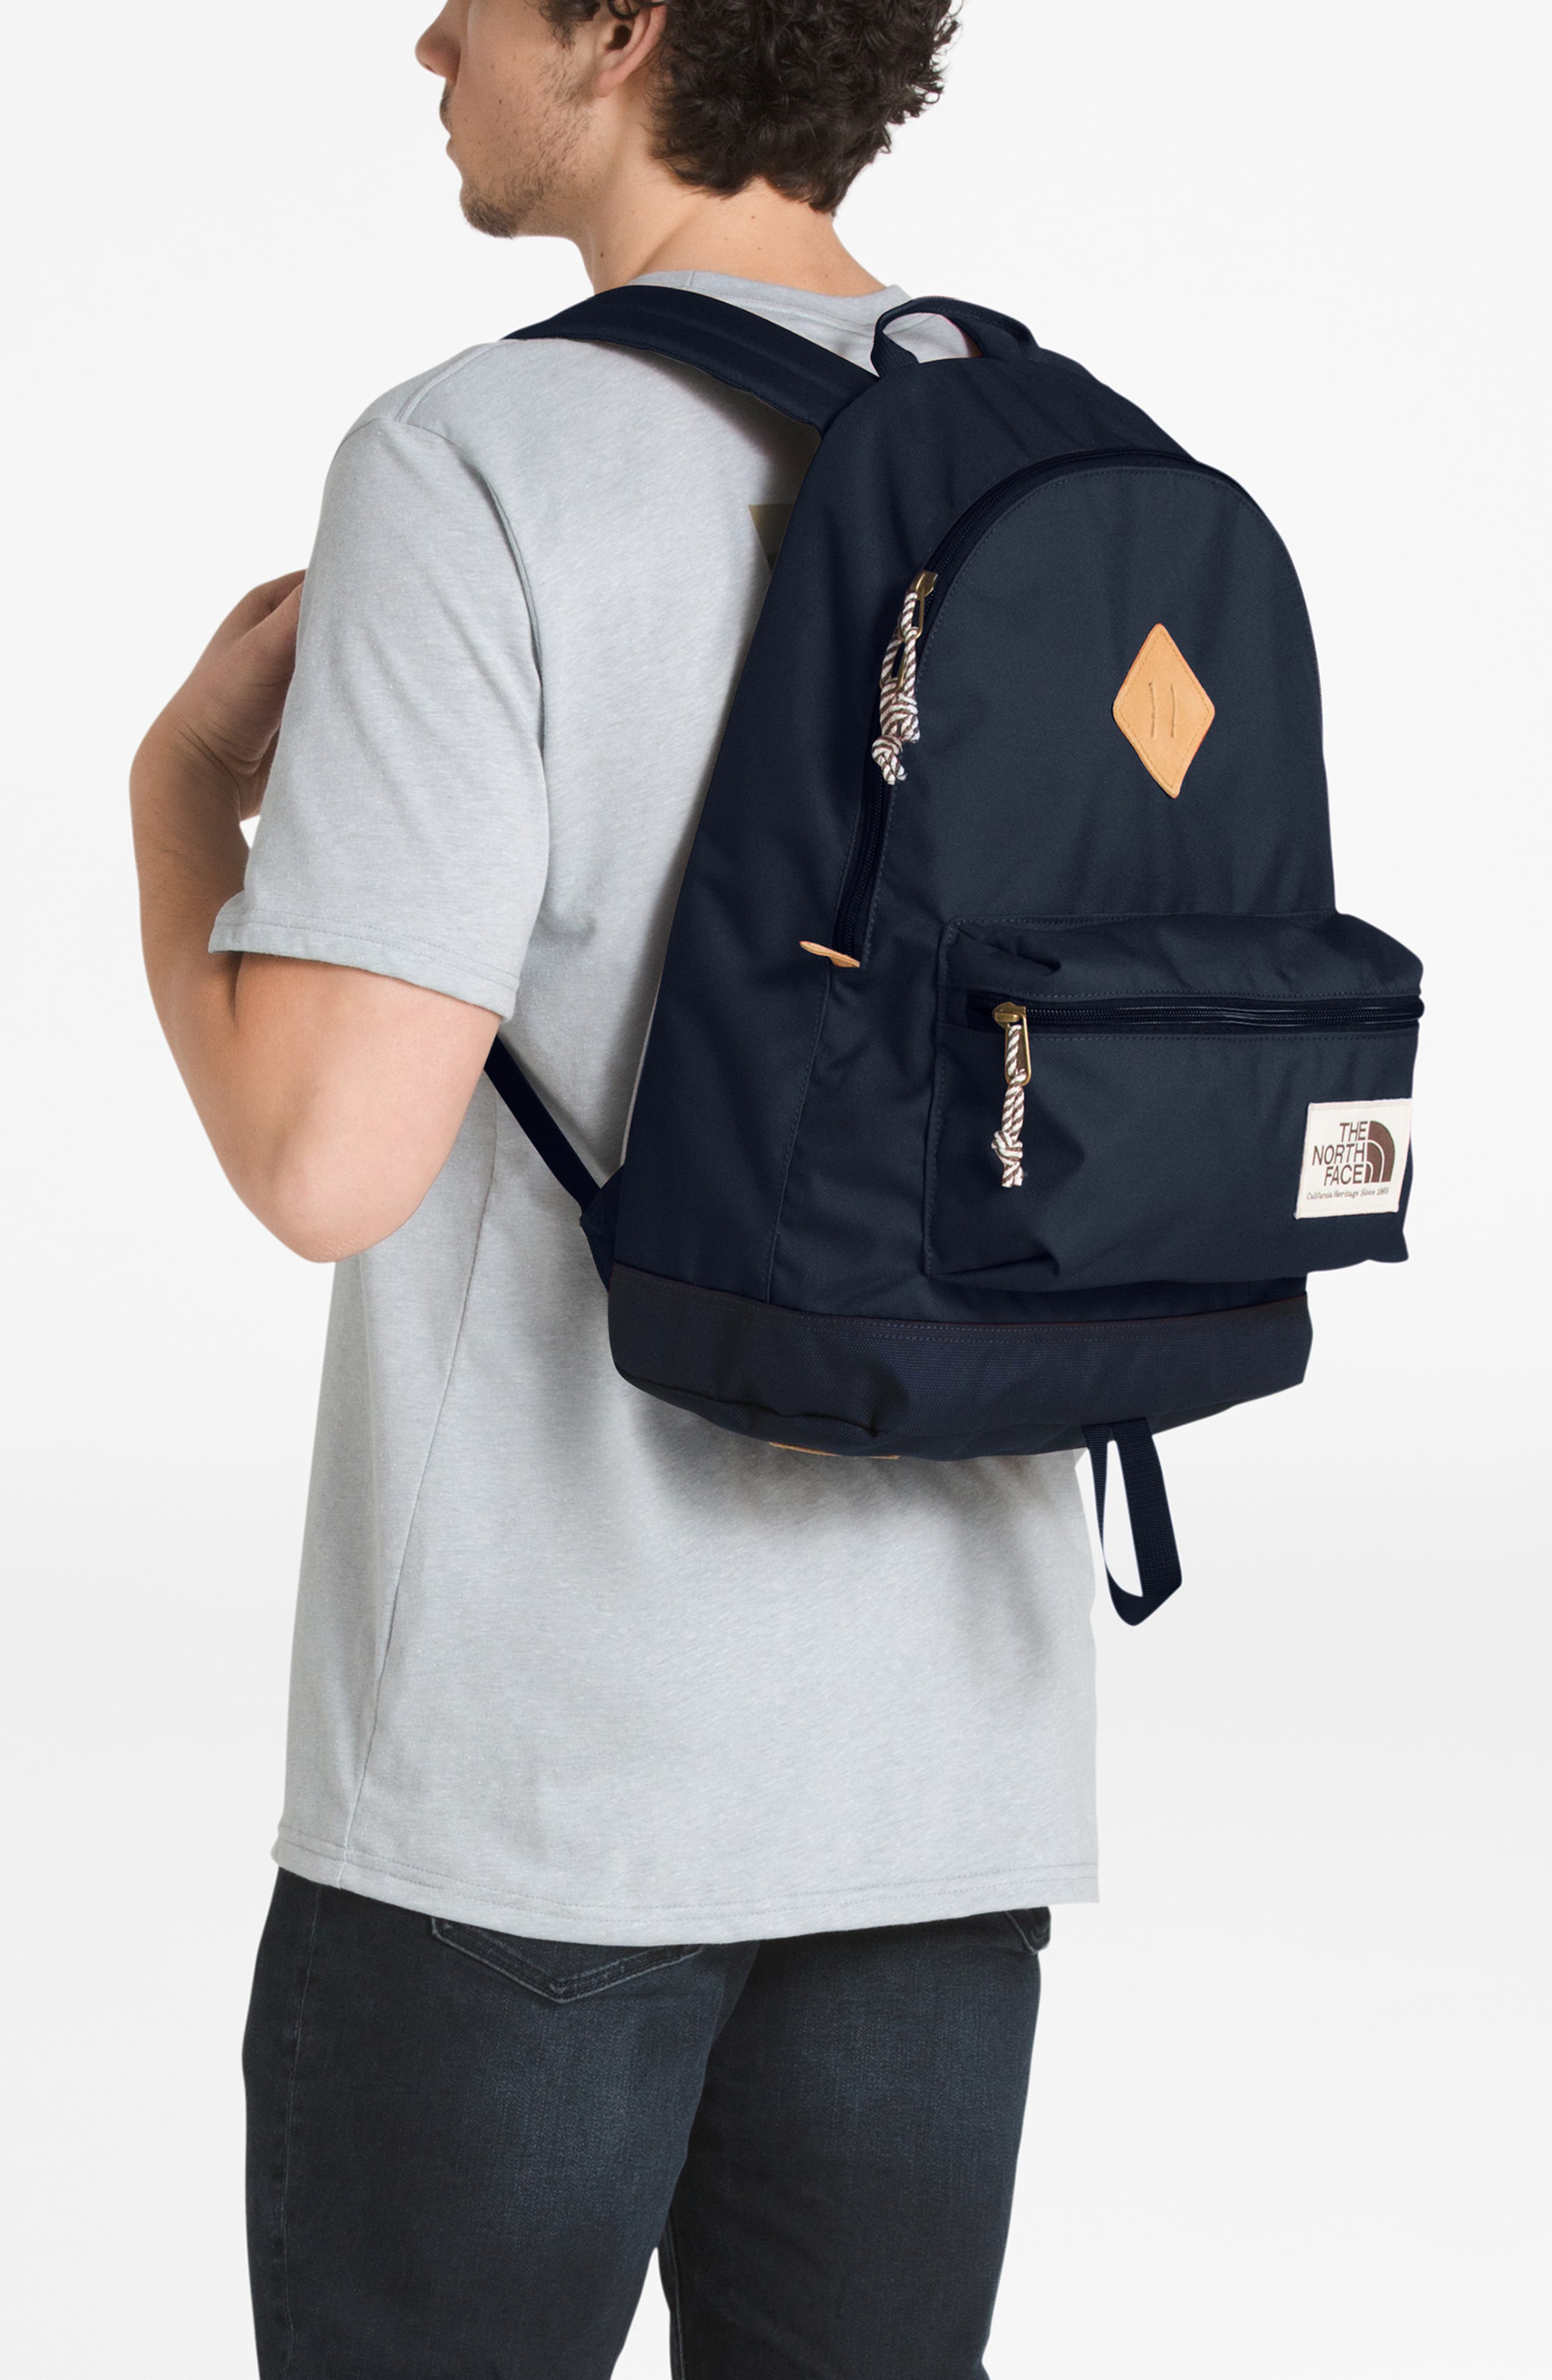 The North Face Berkeley 25-Liter Backpack - Blue